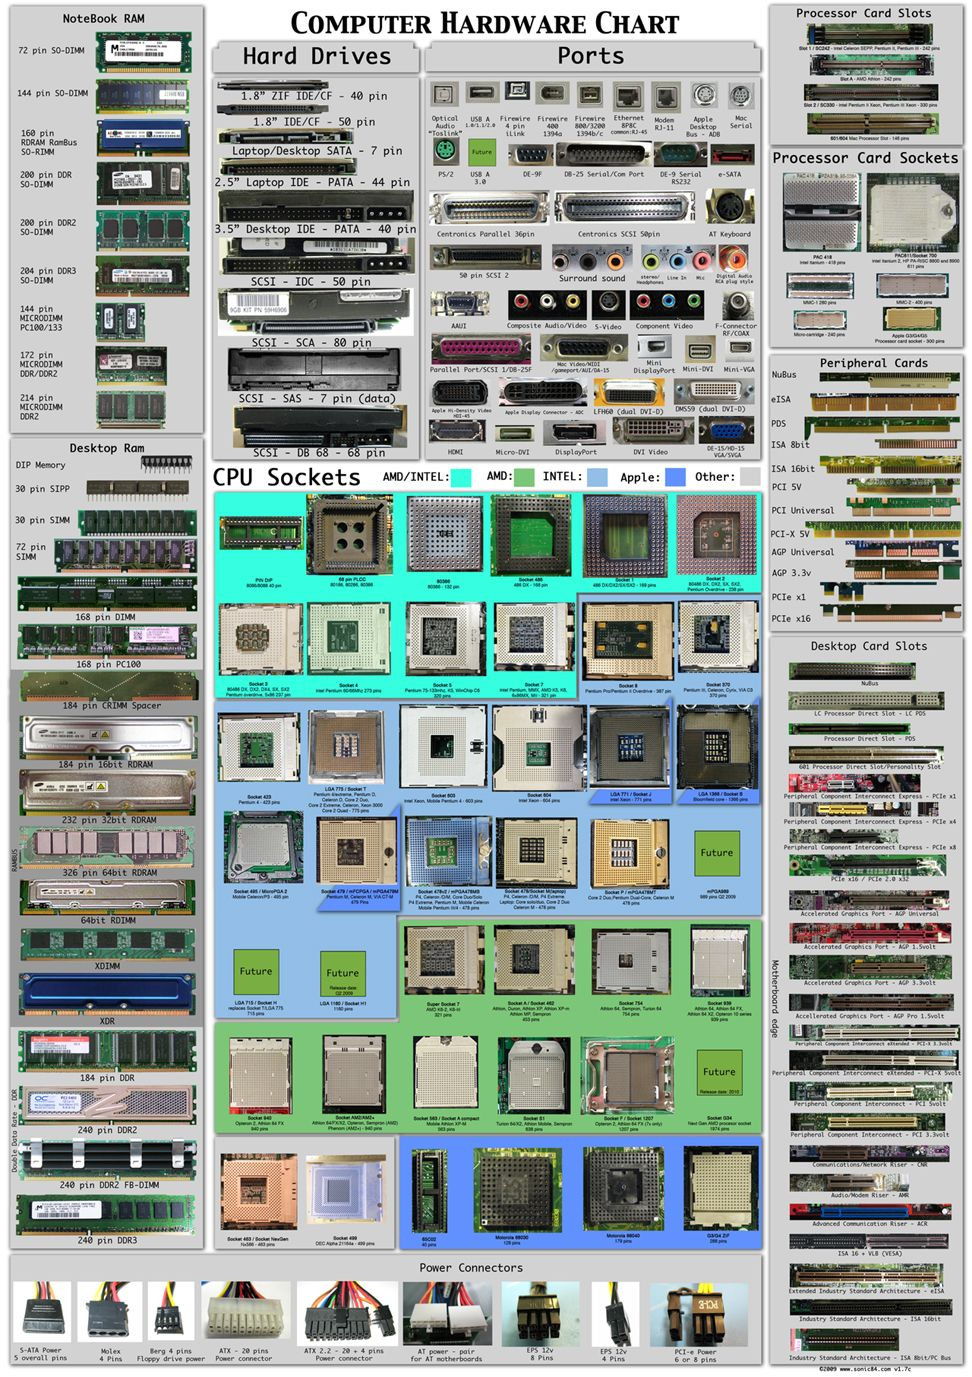 Computer Hardware Chart - iNFOGRAPHiCs MANiA | TECHNOLOGY ...